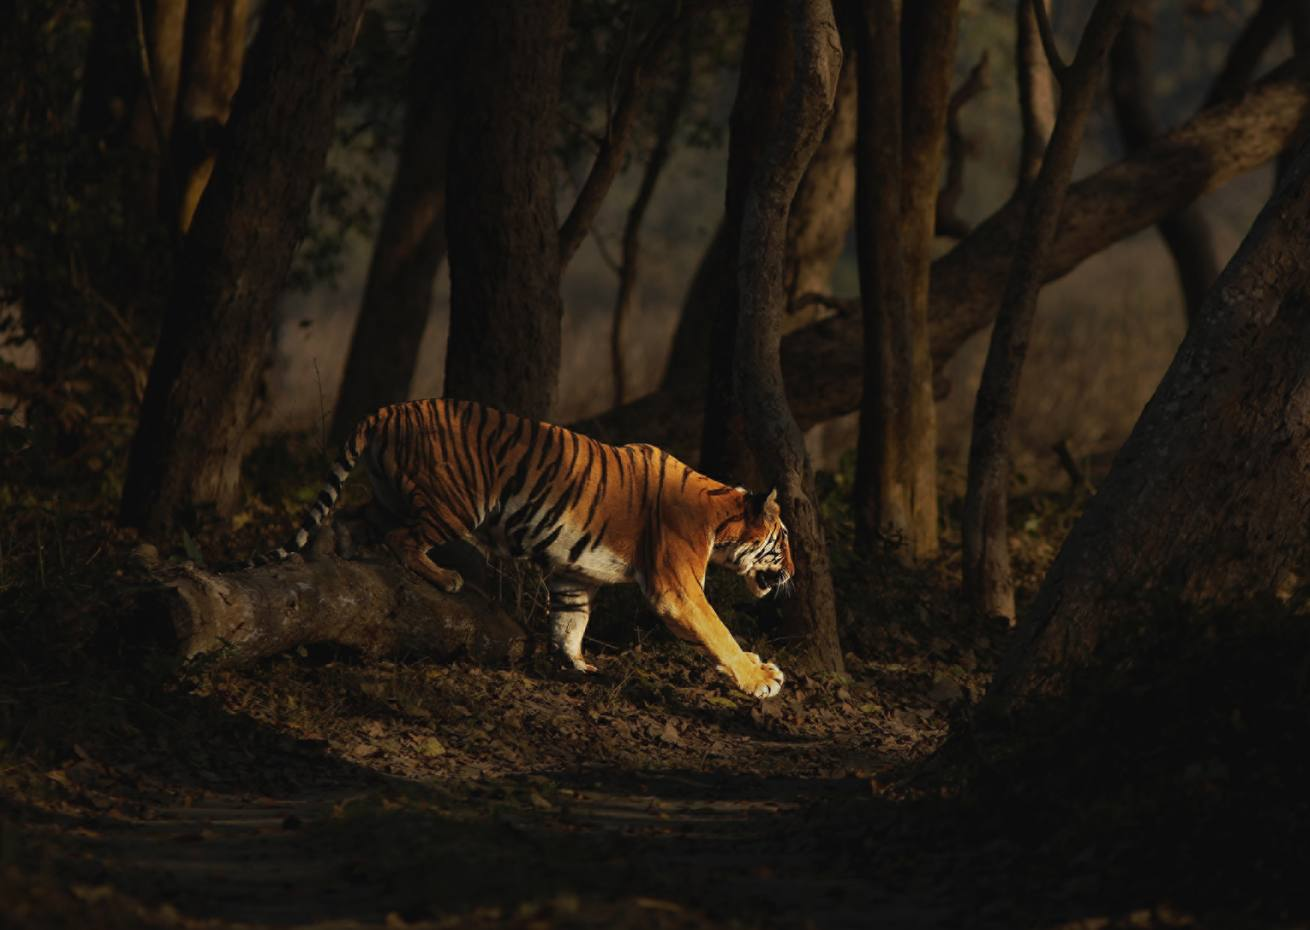 The wealth of wildlife at Dudhwa includes tigers, elephants and rhinos